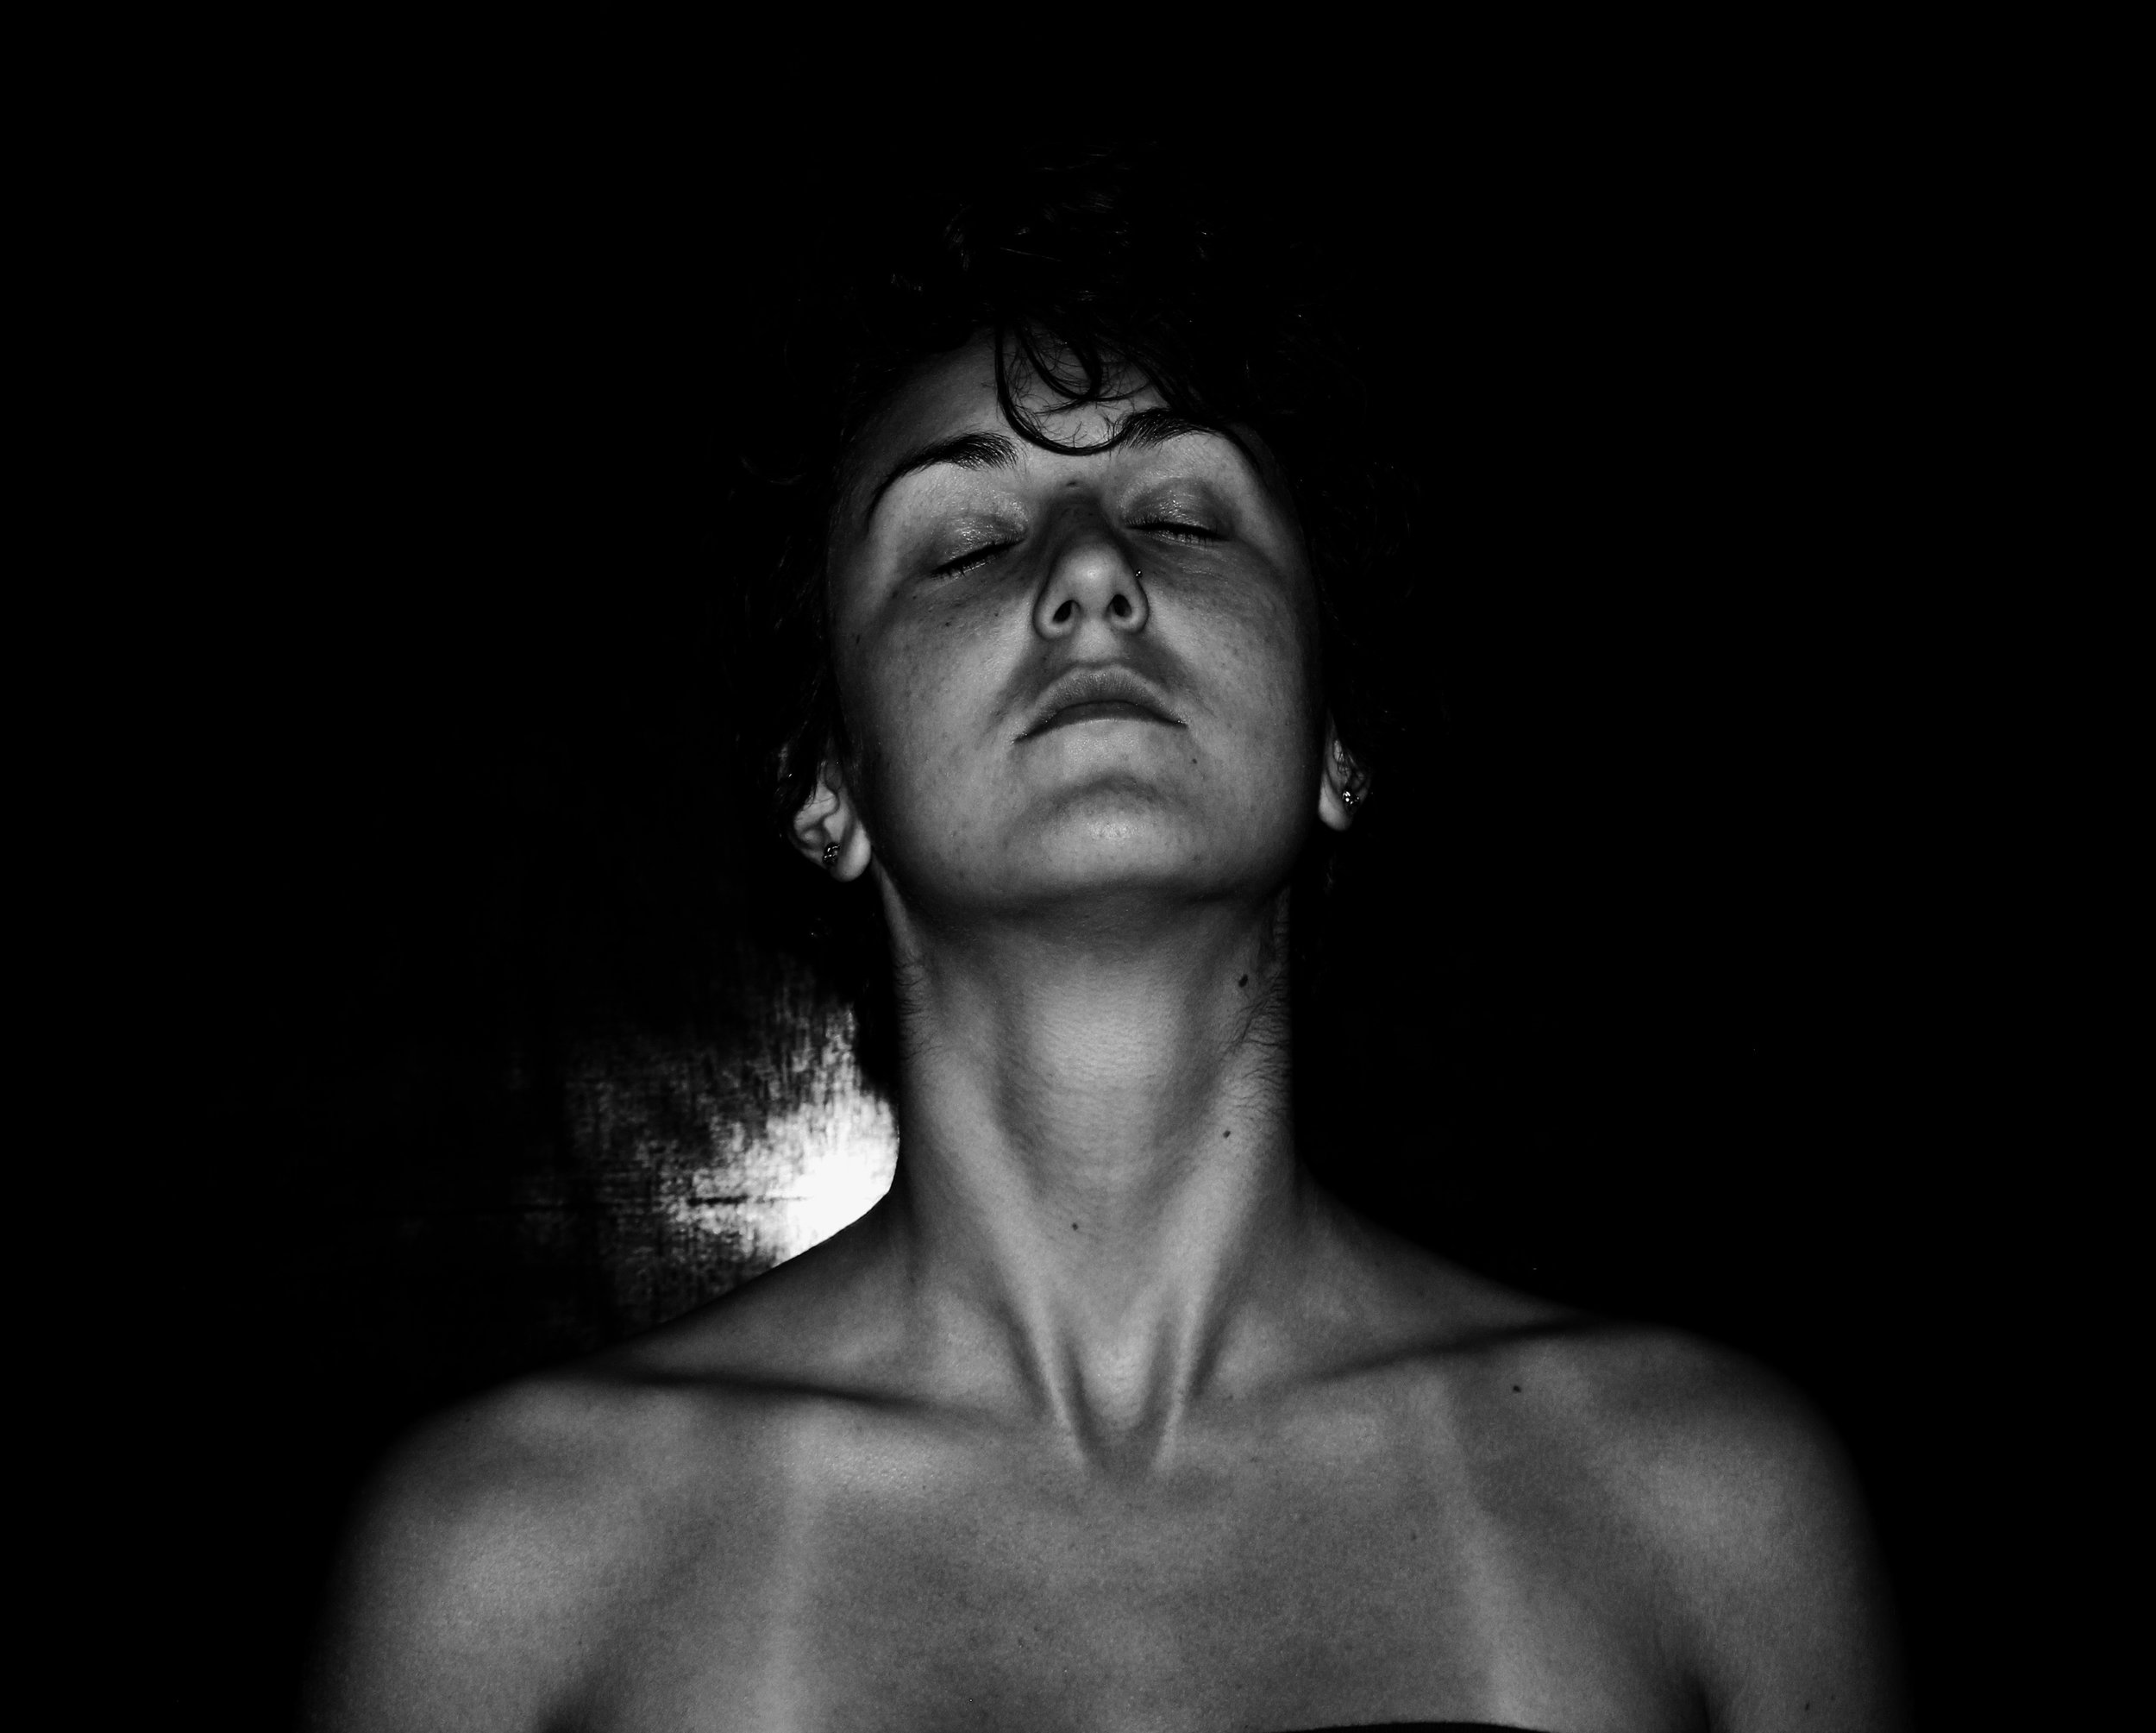 In the absence of light, one can still see her dulled soul shine  In the presence of light, her soul is no match and she fears she may have no spark left at all  ~Comparative Lifelessness